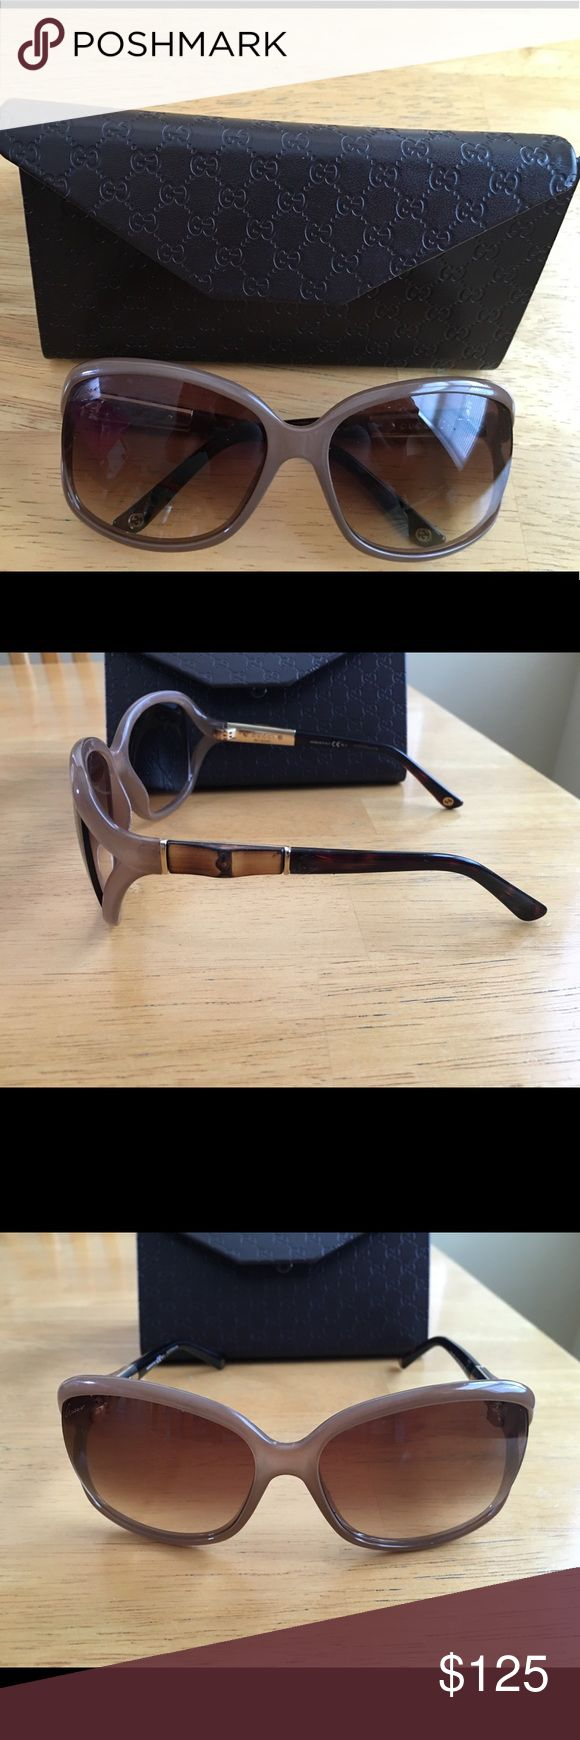 Gucci womens sunglasses Gucci oval womens bamboo temple sunglasses. Worn once, like new condition Other